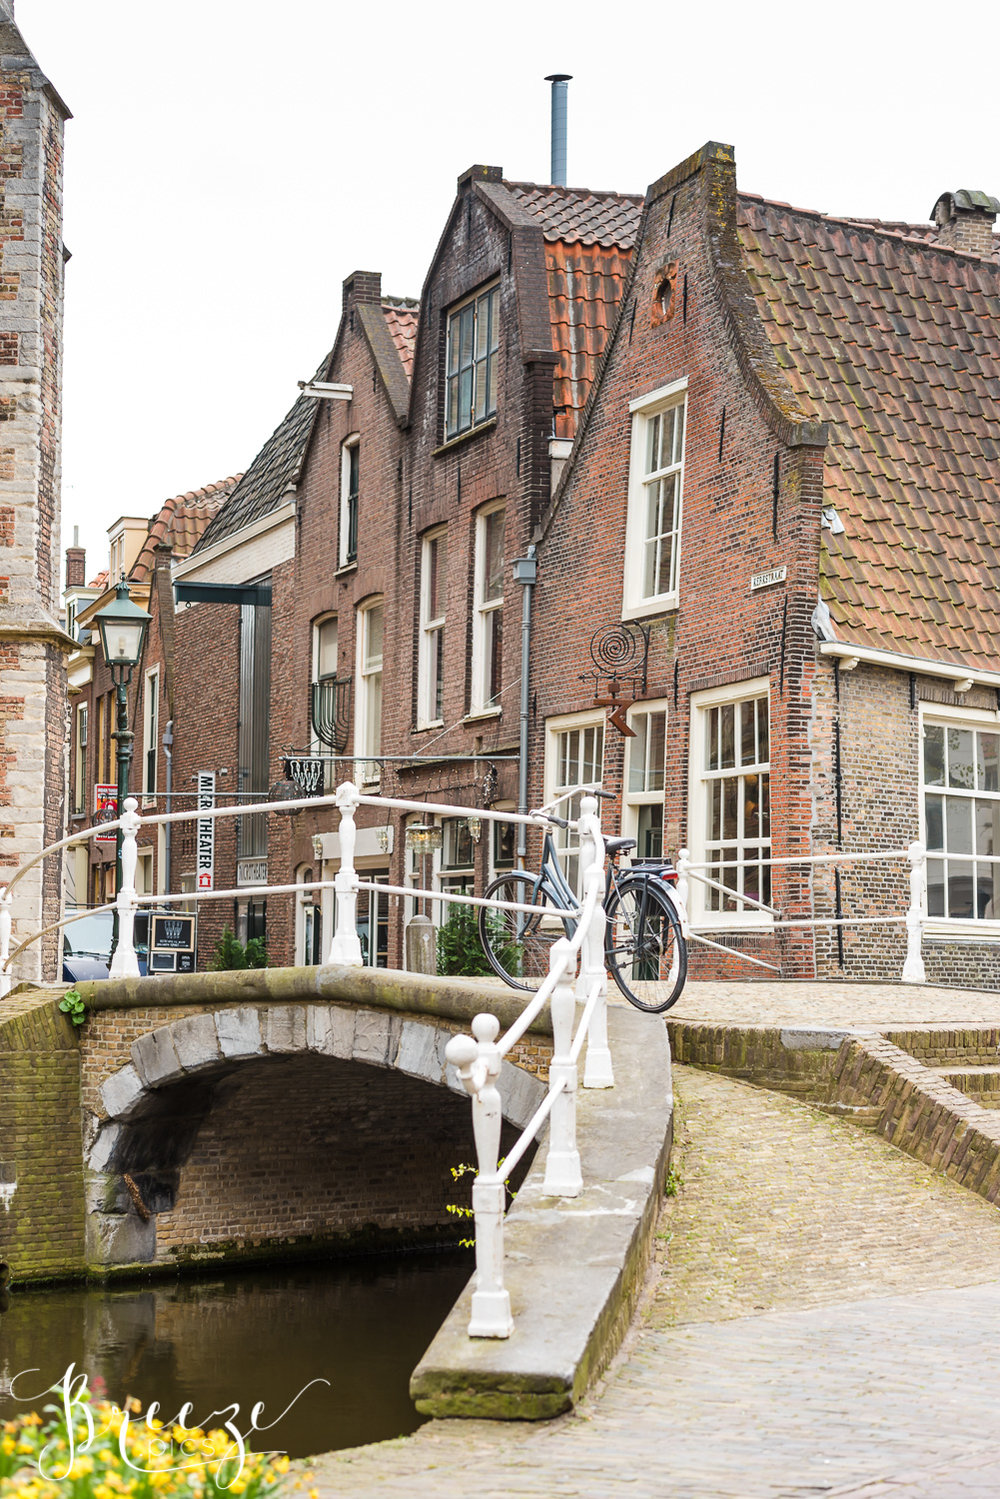 Delft House and Canal, The Netherlands, Travel Photography, Bernadette Meyers